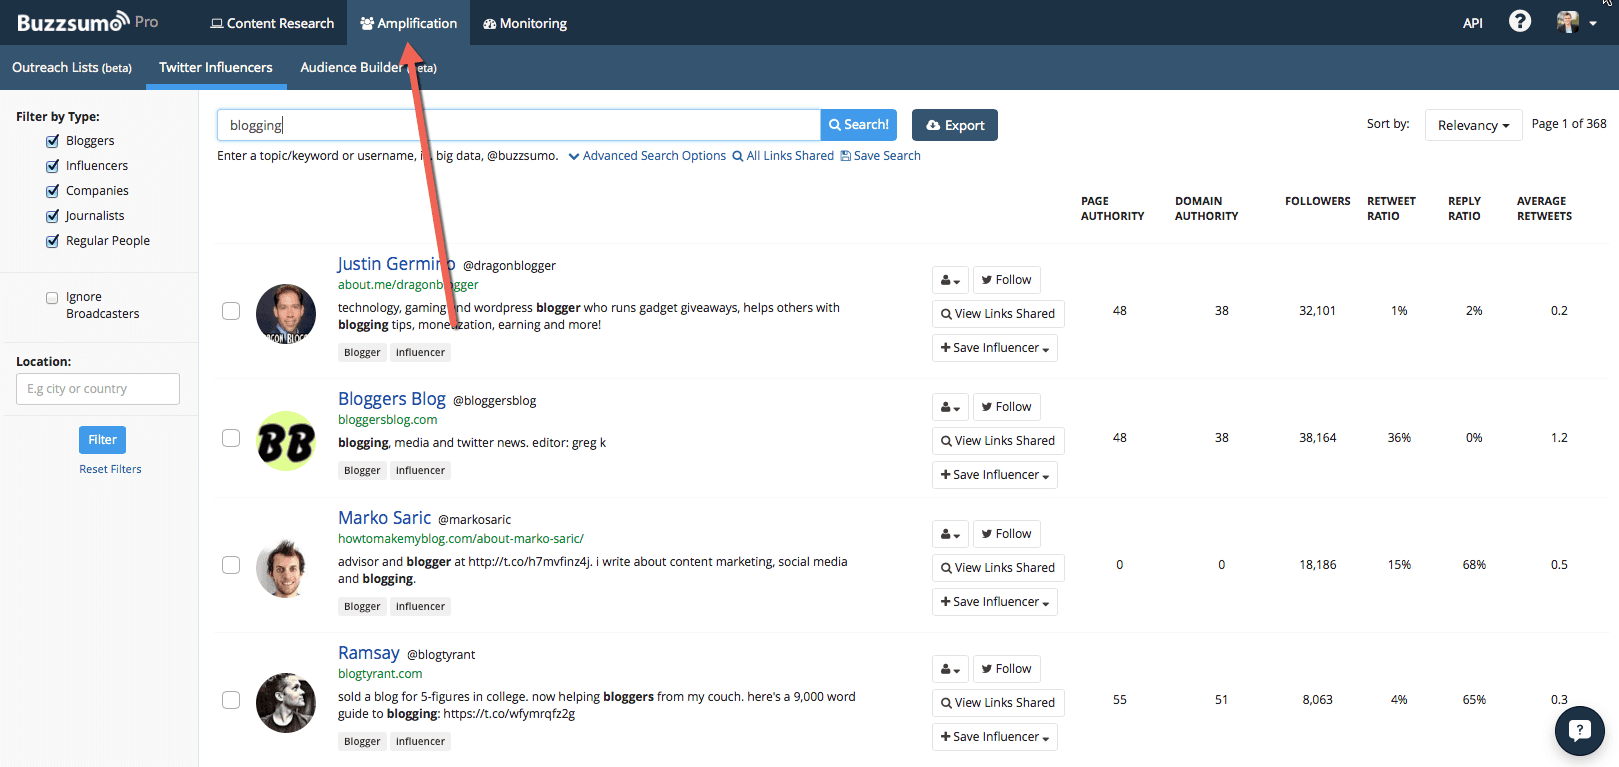 BuzzSumo is a great tool for finding influencers